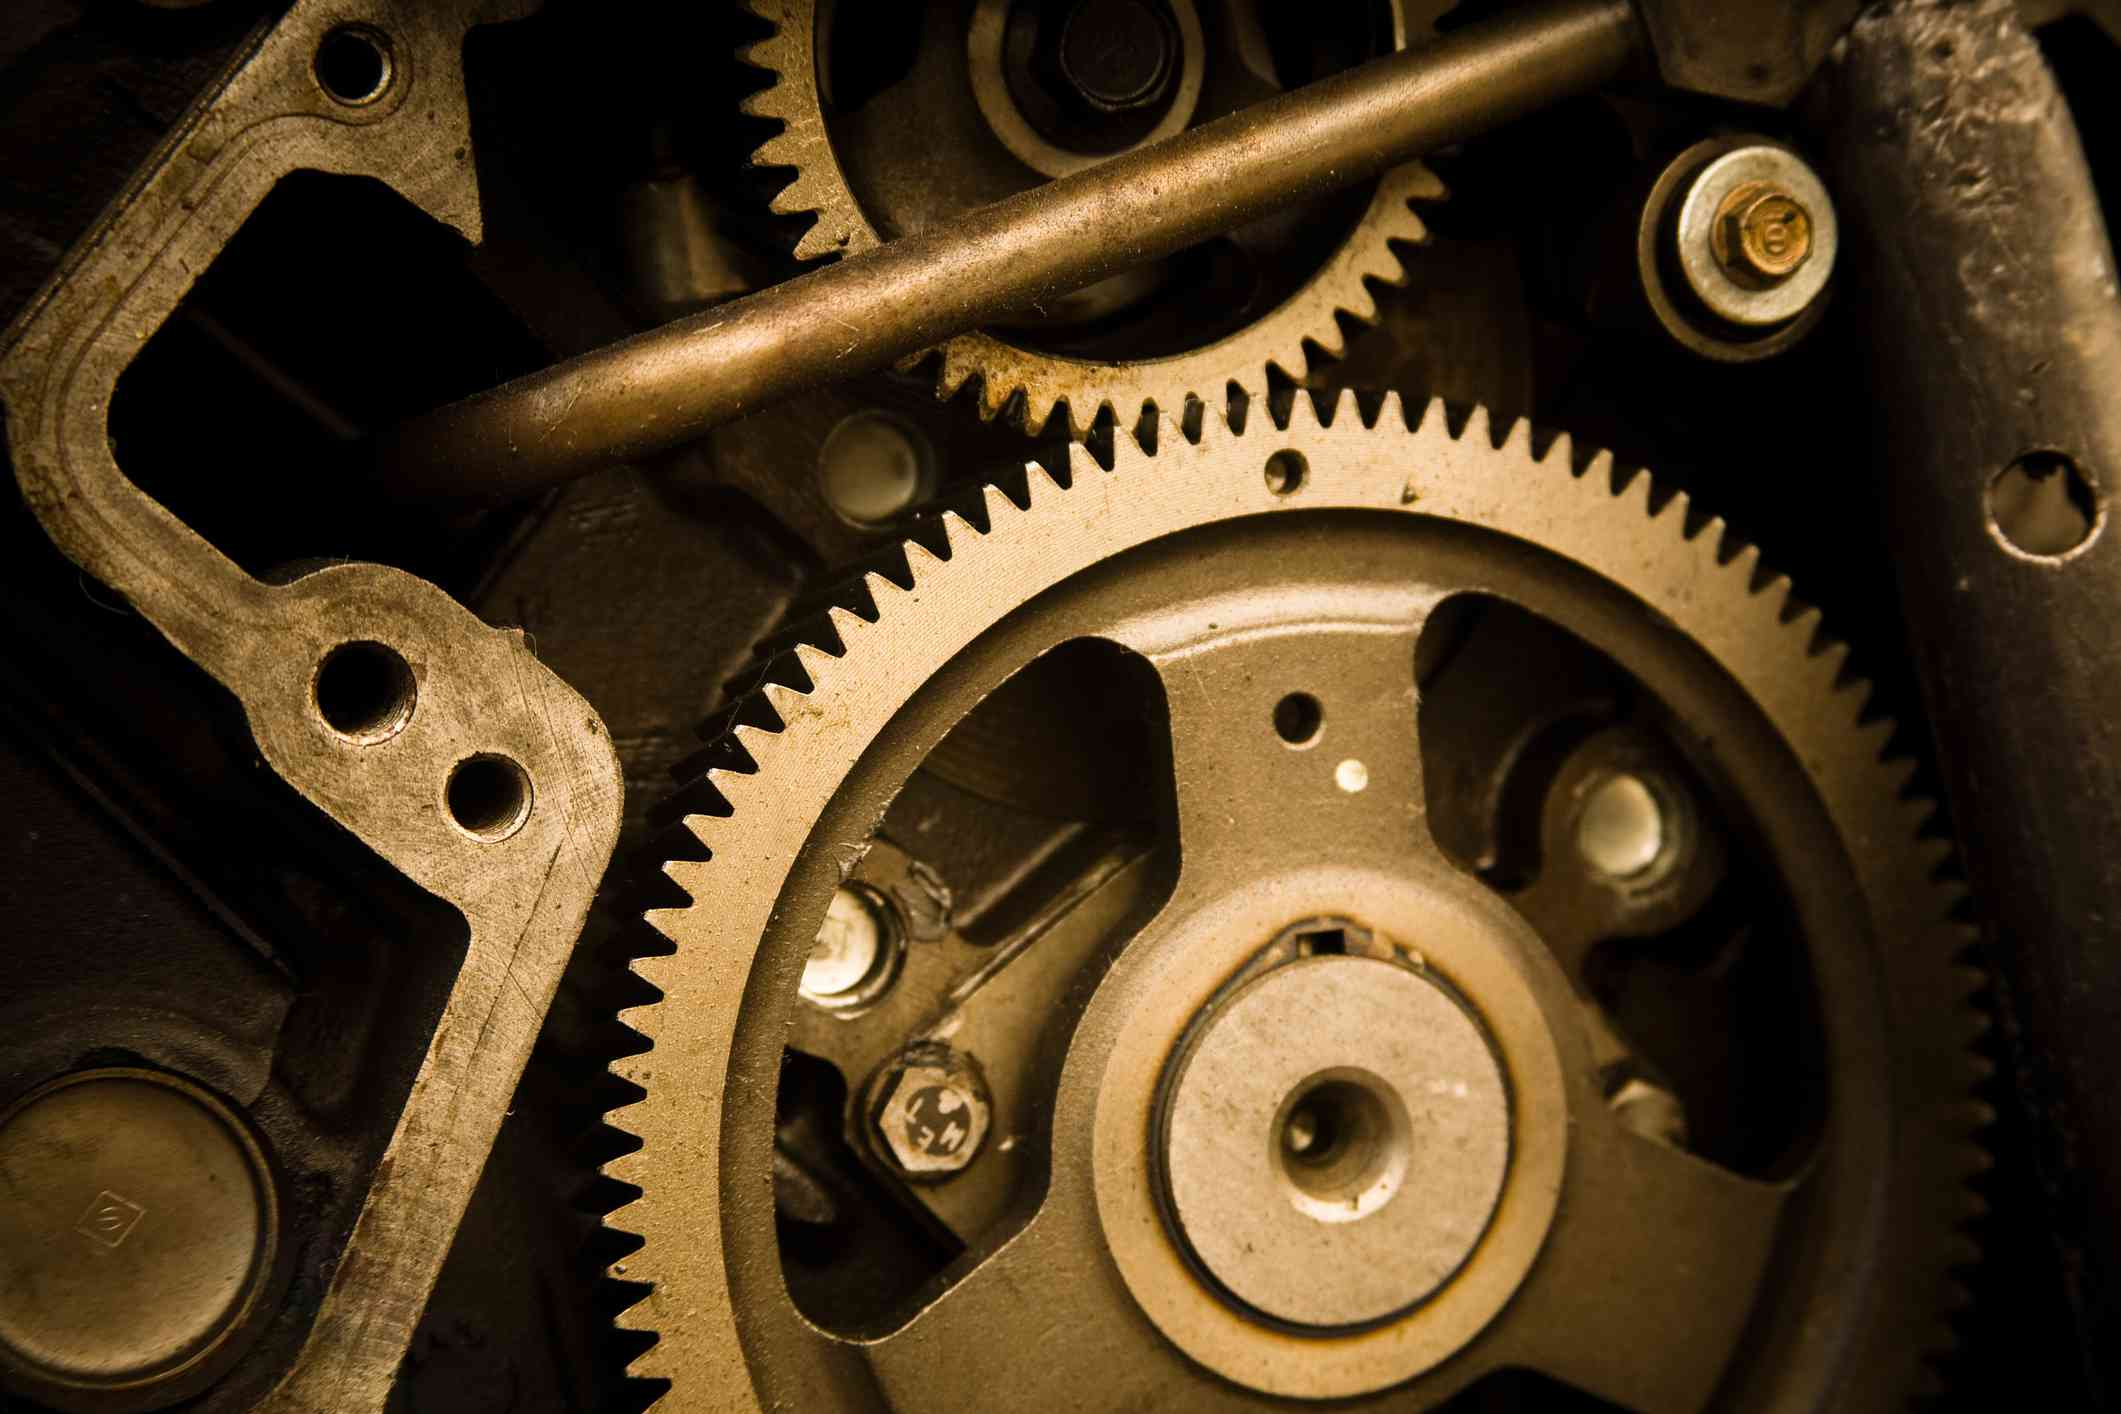 The interlocking parts and gears of a mechanism symbolize Durkheim's book The Division of Labor in Society